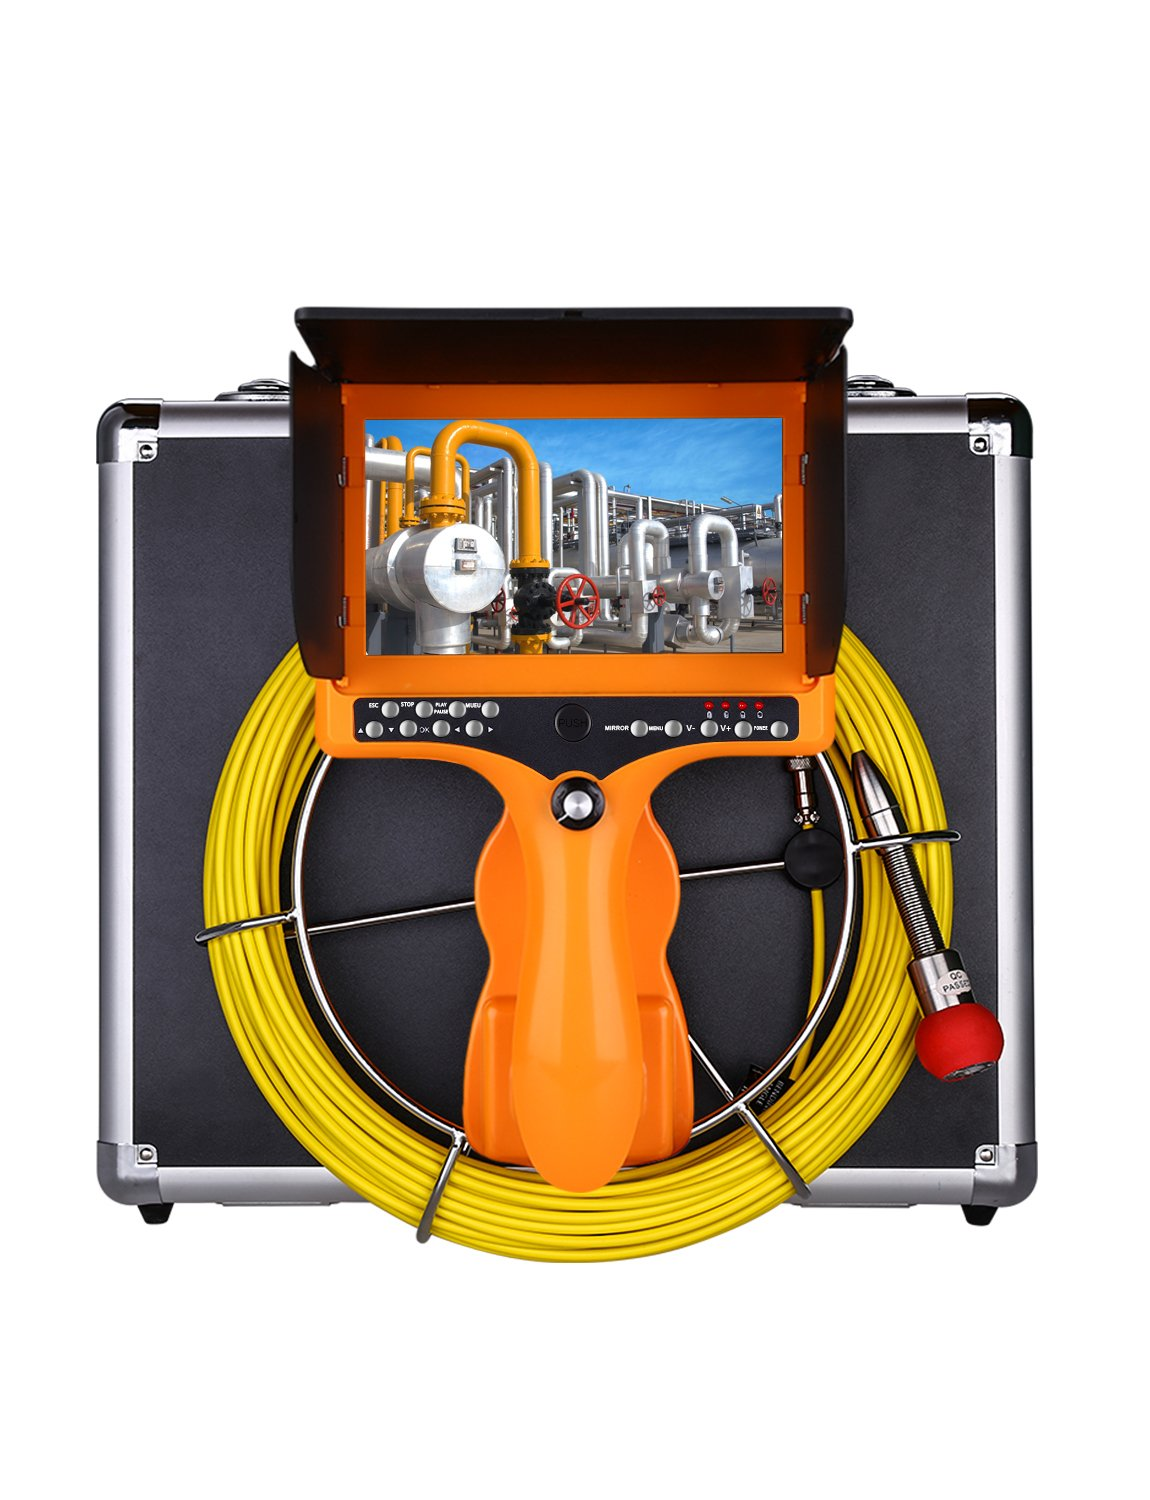 PC30M Waterproof IP68 30M//100ft Snake Video System with 7 Inch LCD Monitor 1000TVL Sony CCD DVR Recorder 8GB SD Card Include Pipe Inspection Camera,IHBUDS Pipeline Drain Sewer Industrial Endoscope